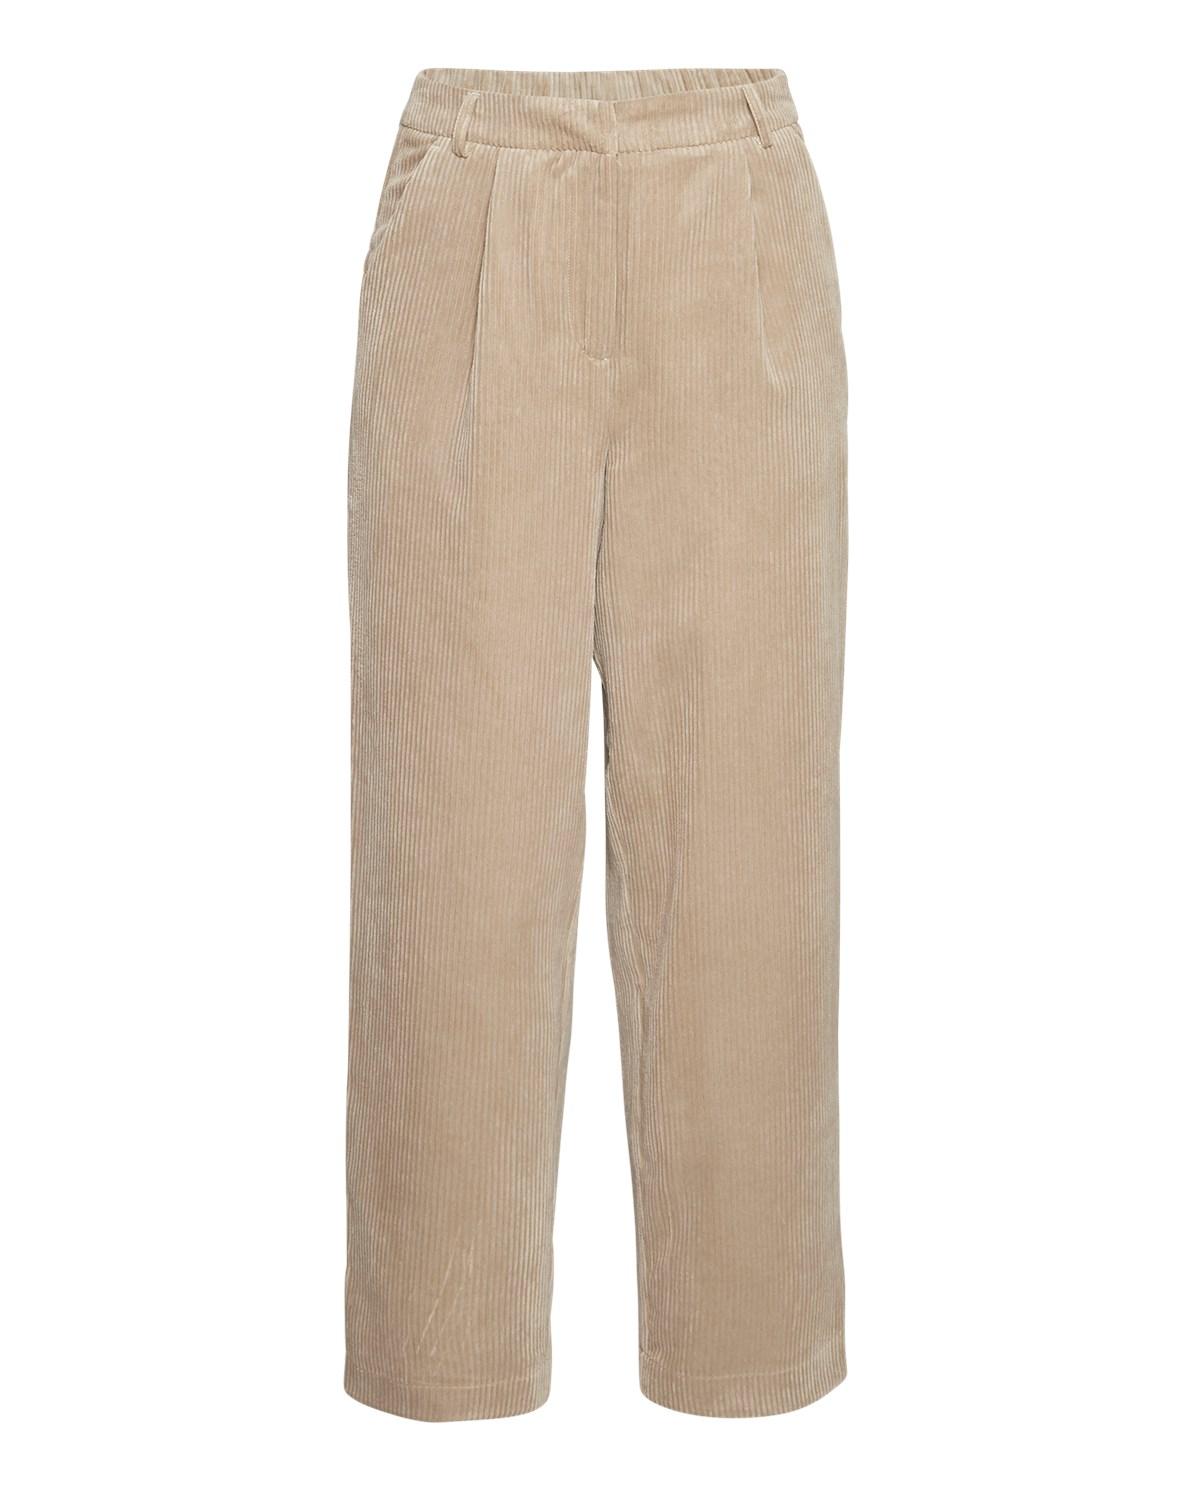 Charis Jeppi HW Ankle Pants